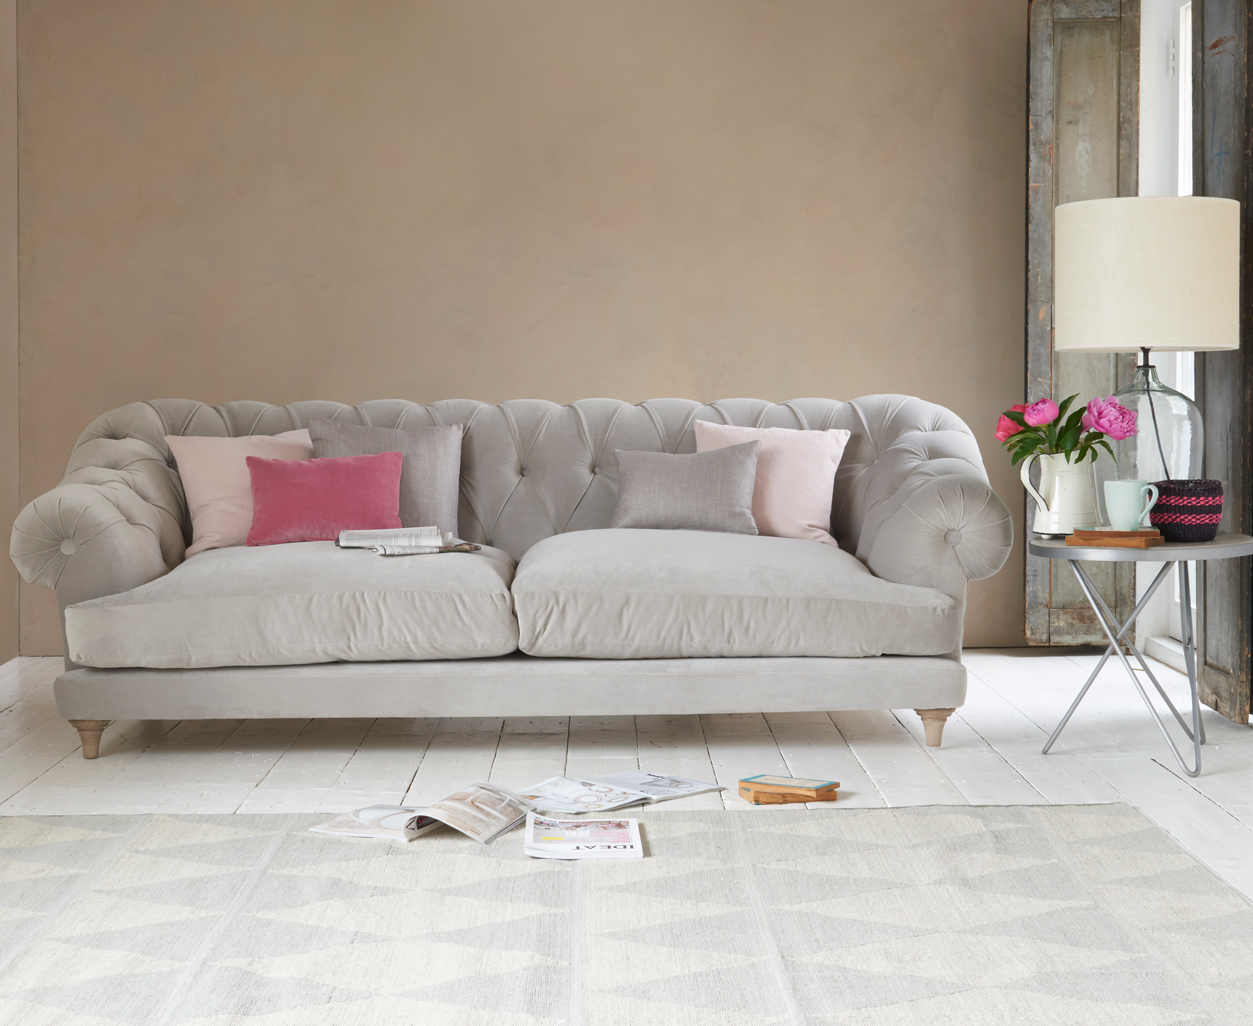 Bagsie Sofa Chesterfield Style